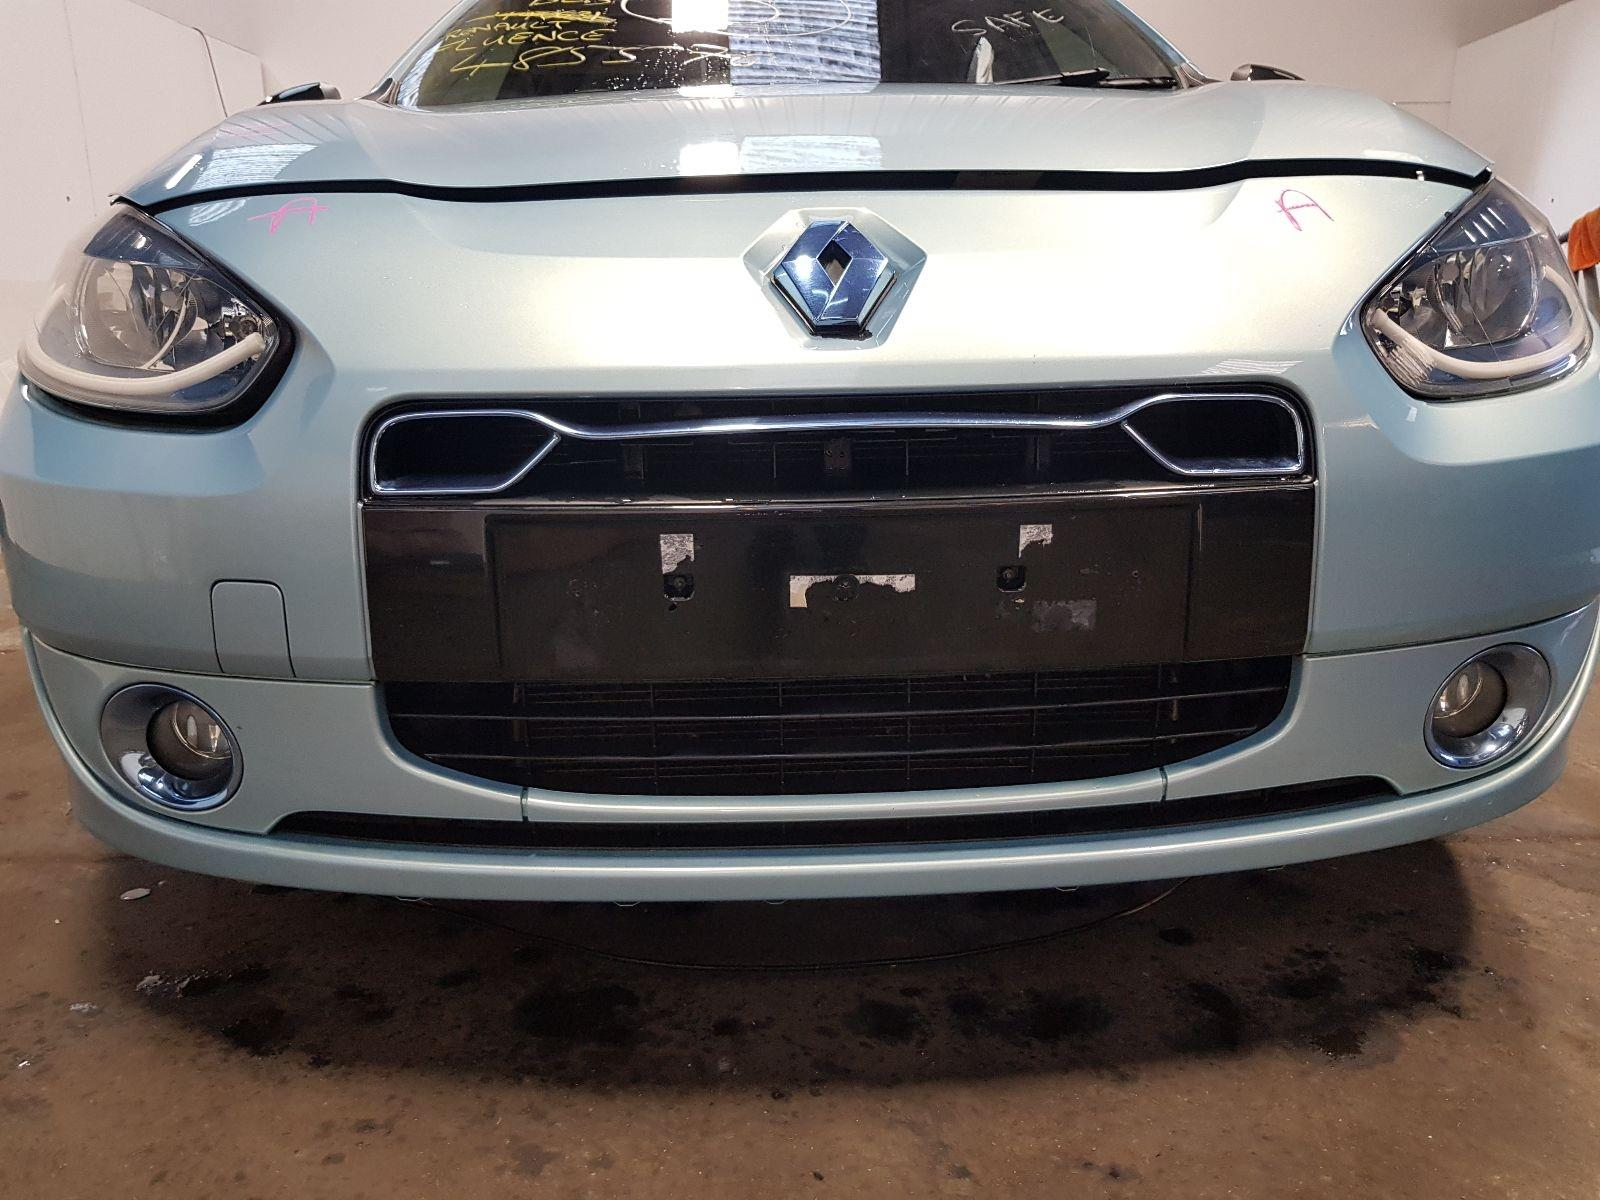 Synetiq Renault Mk1 Ph2 X38 2009 To 2013 Dynamique Front End Assembly Electric Cvt For Sale